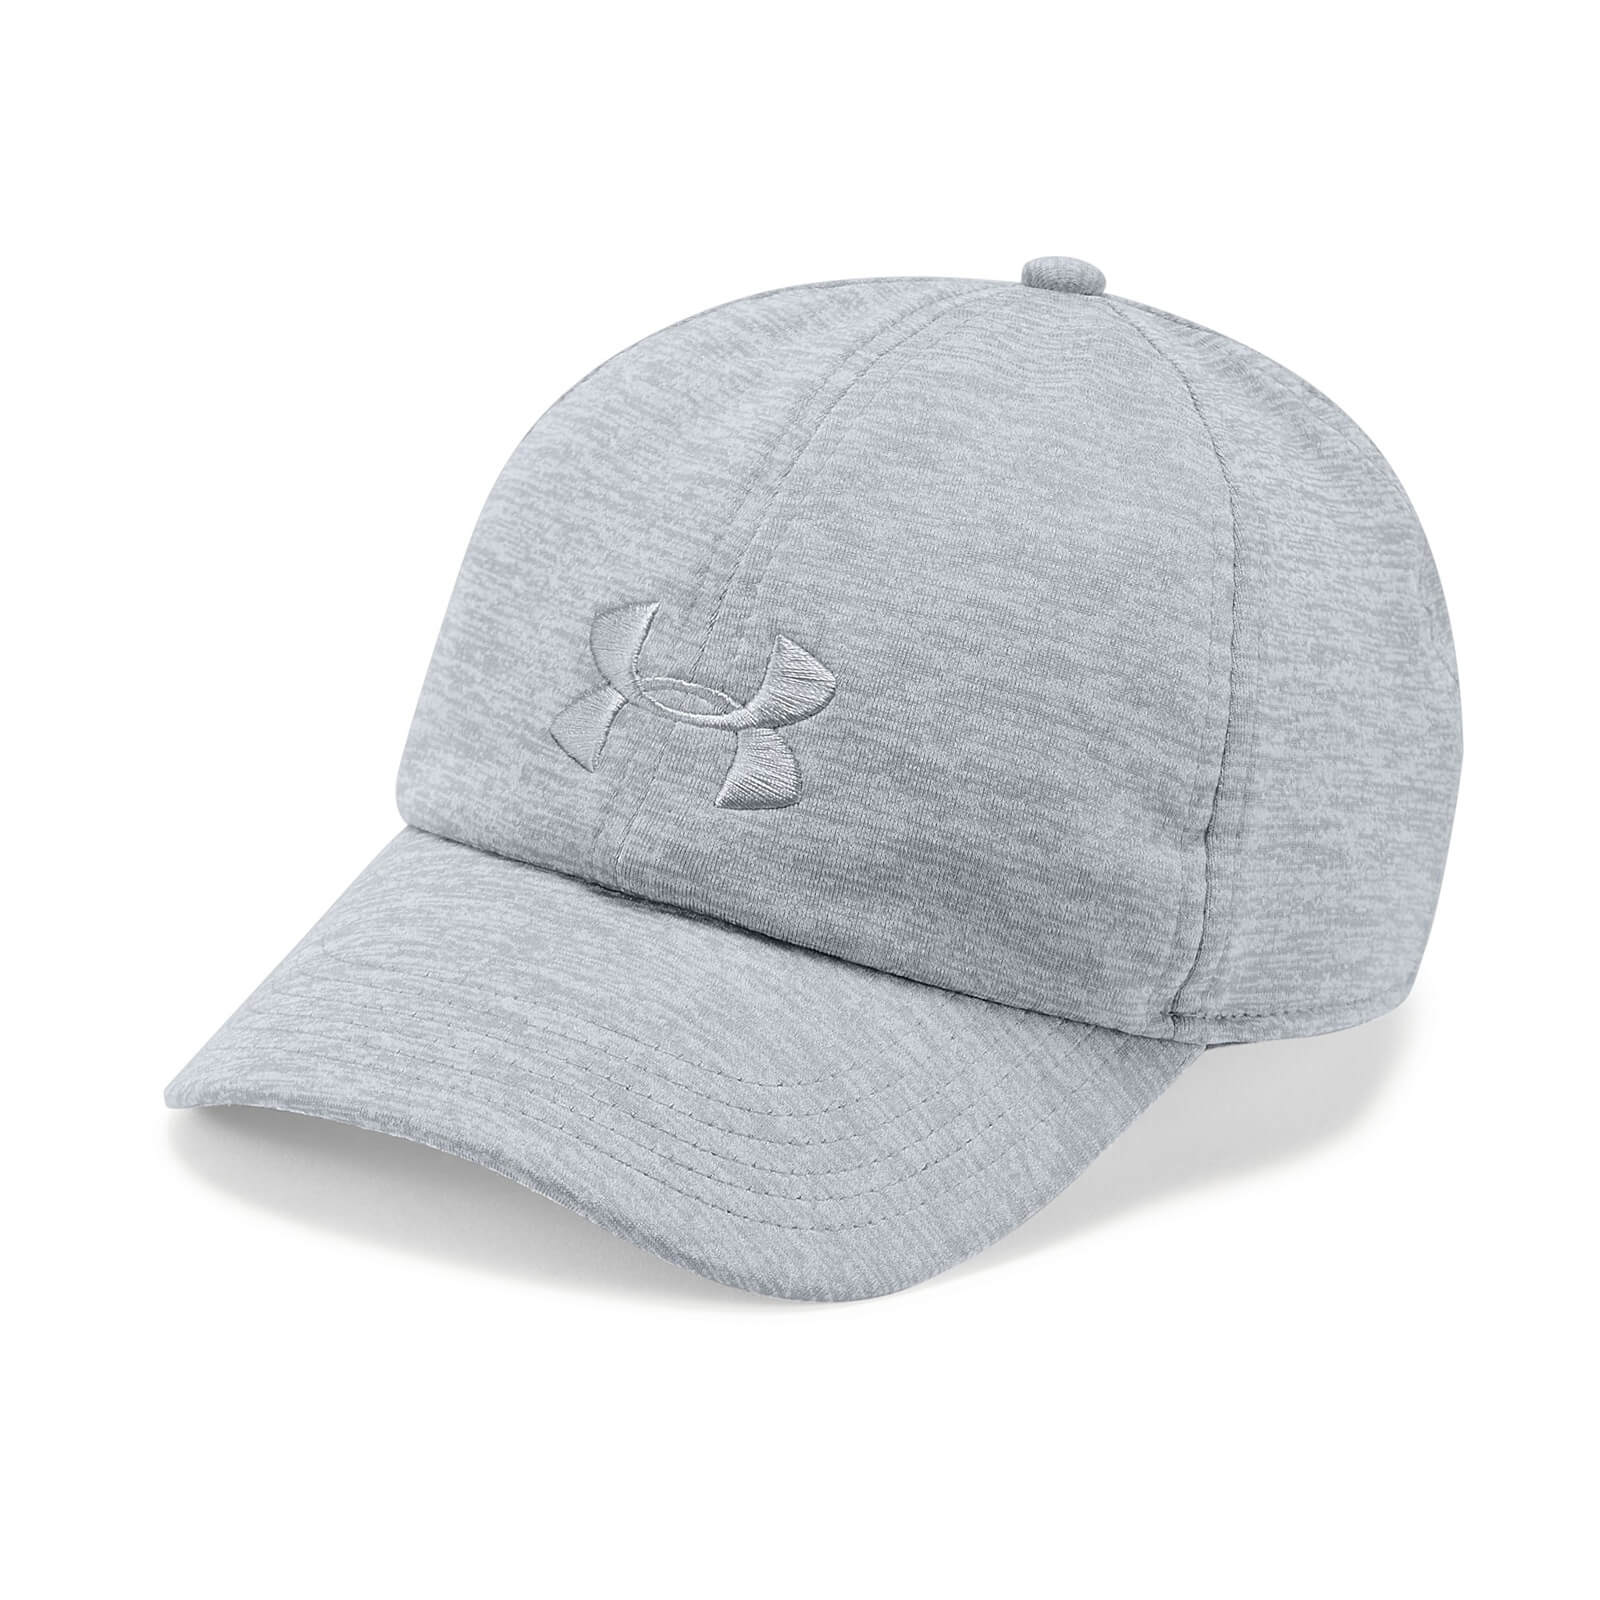 Under Armour Twisted Renegade Cap - Grey